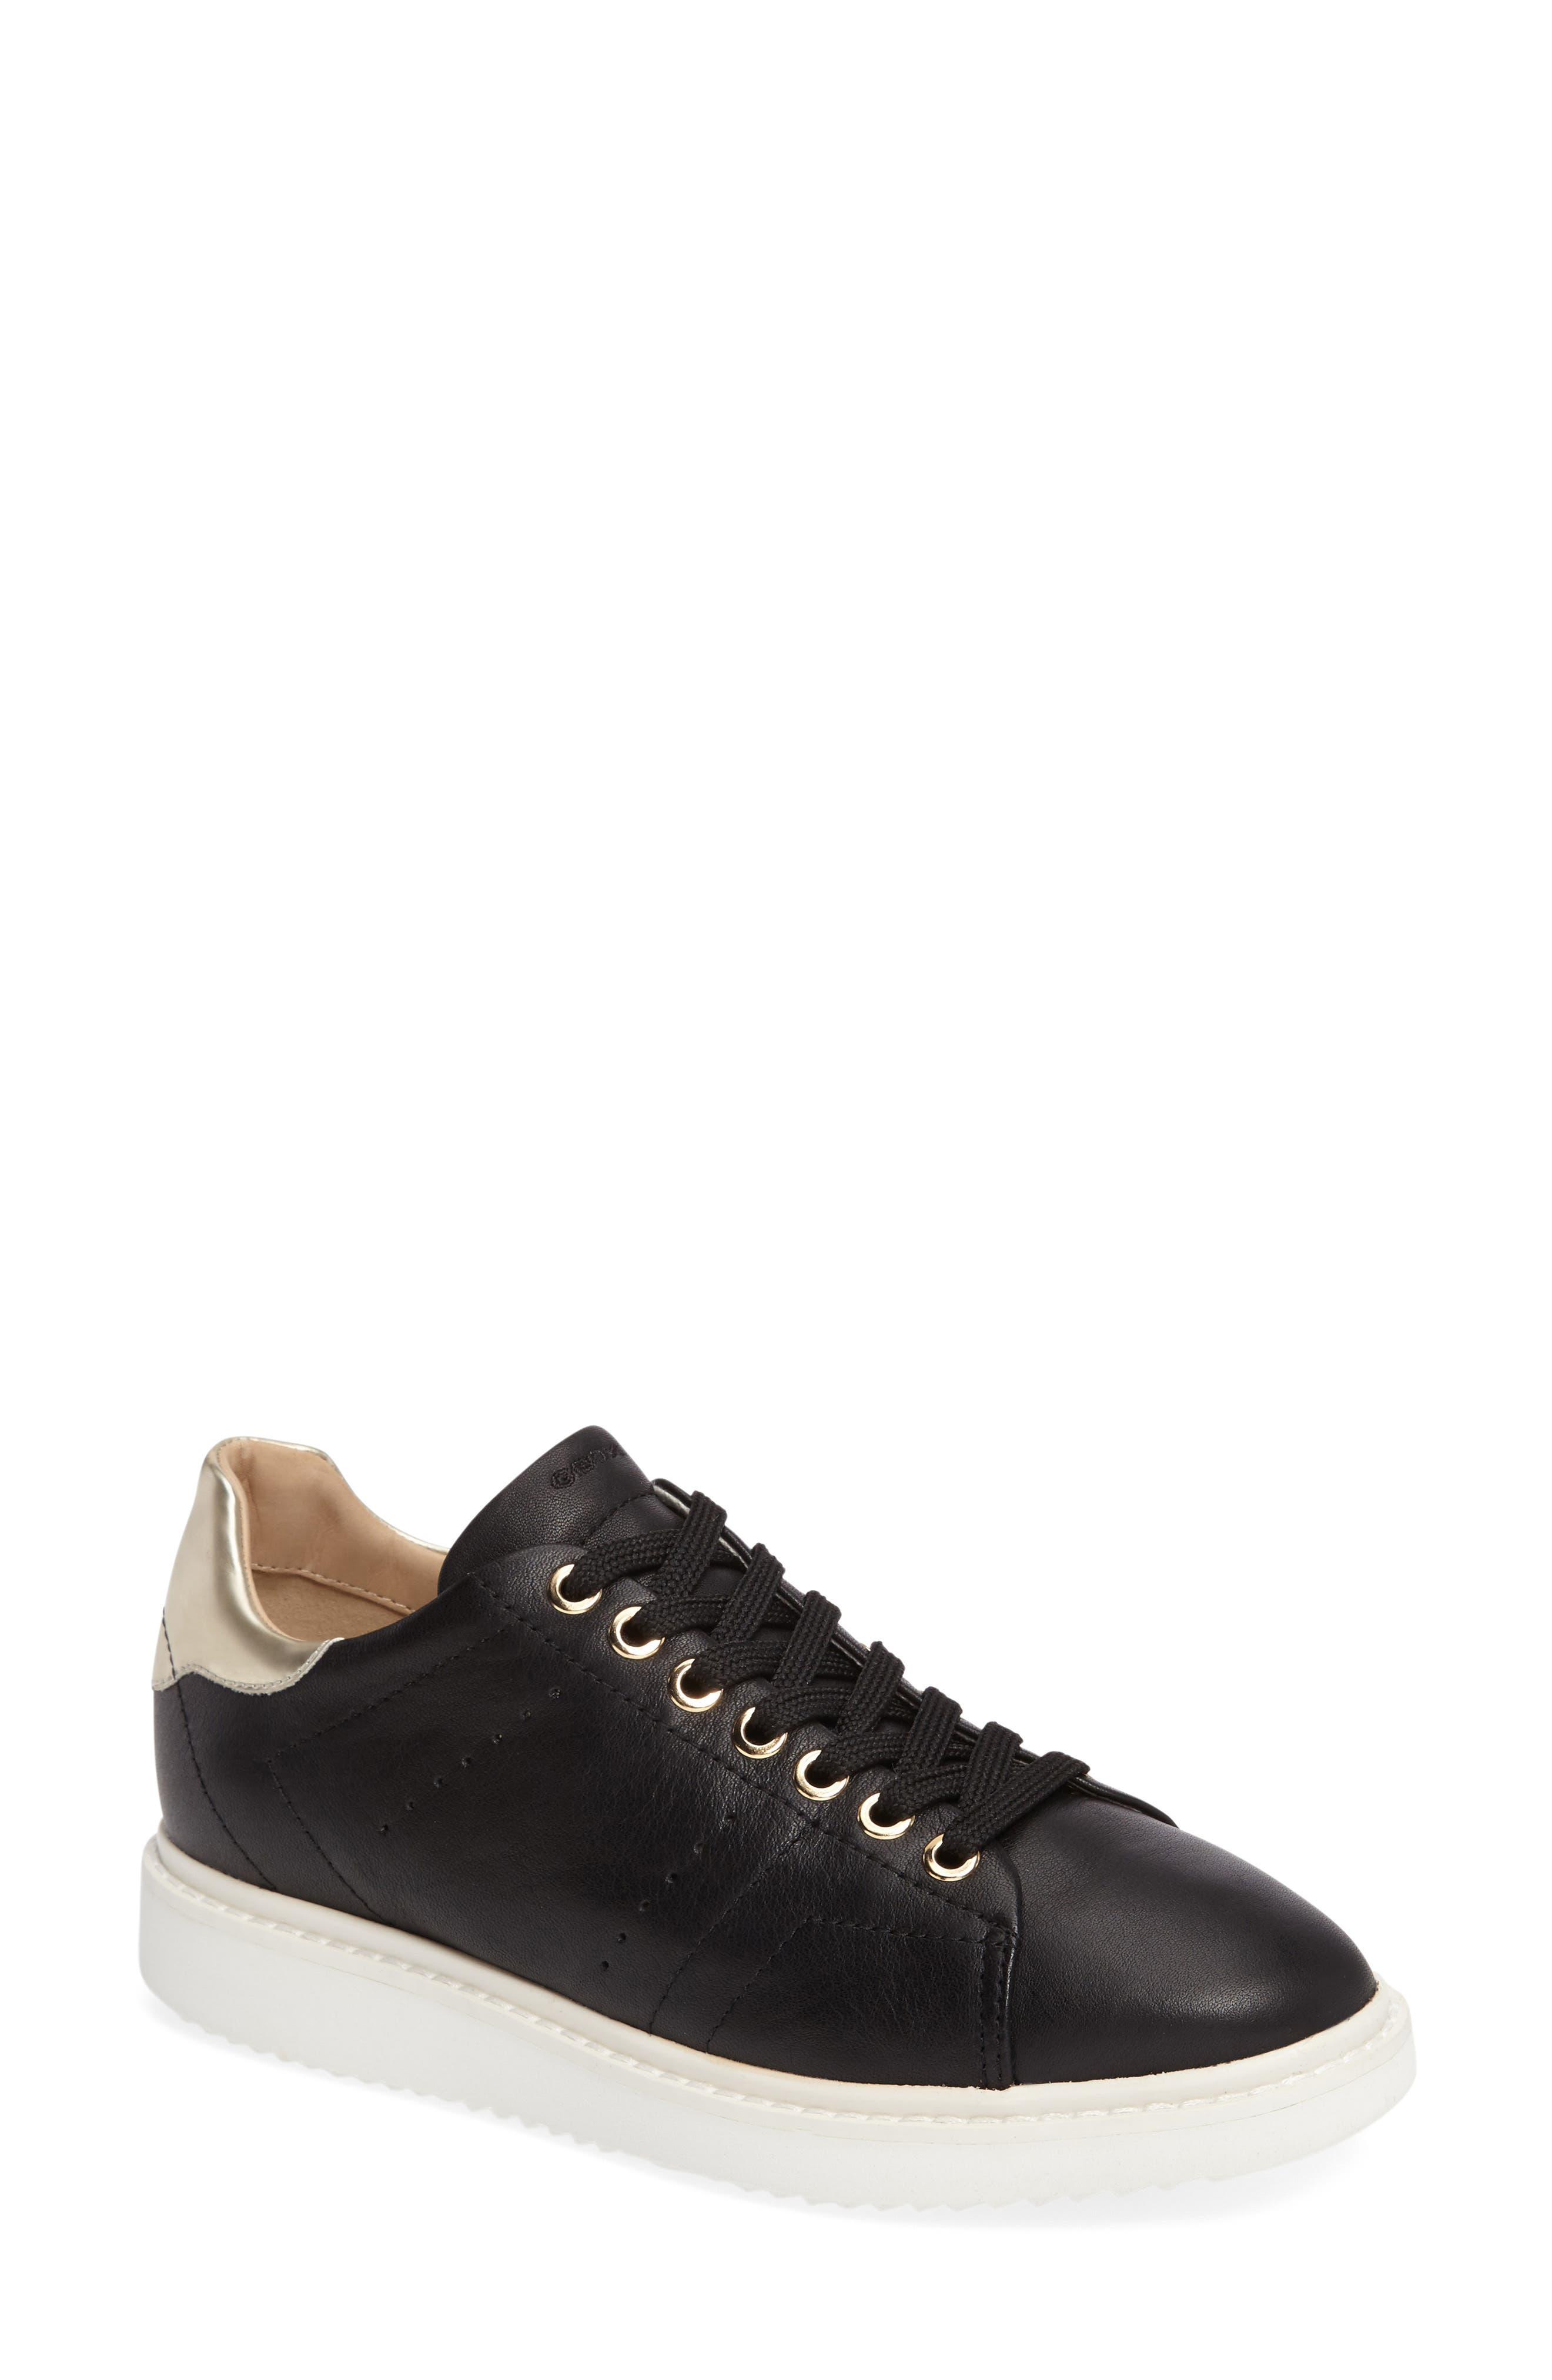 Thymar Sneaker,                         Main,                         color, 001